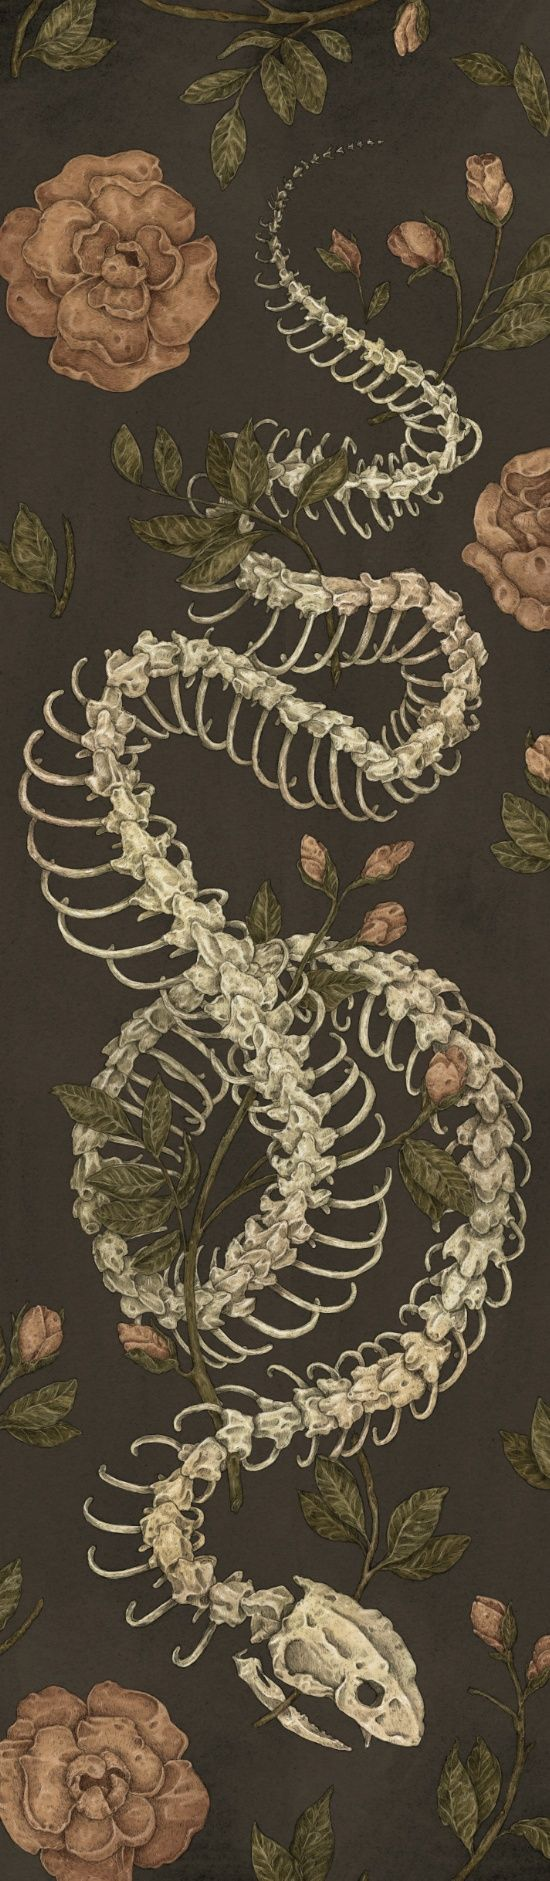 Snake Skeleton Art Print by Jessica Roux